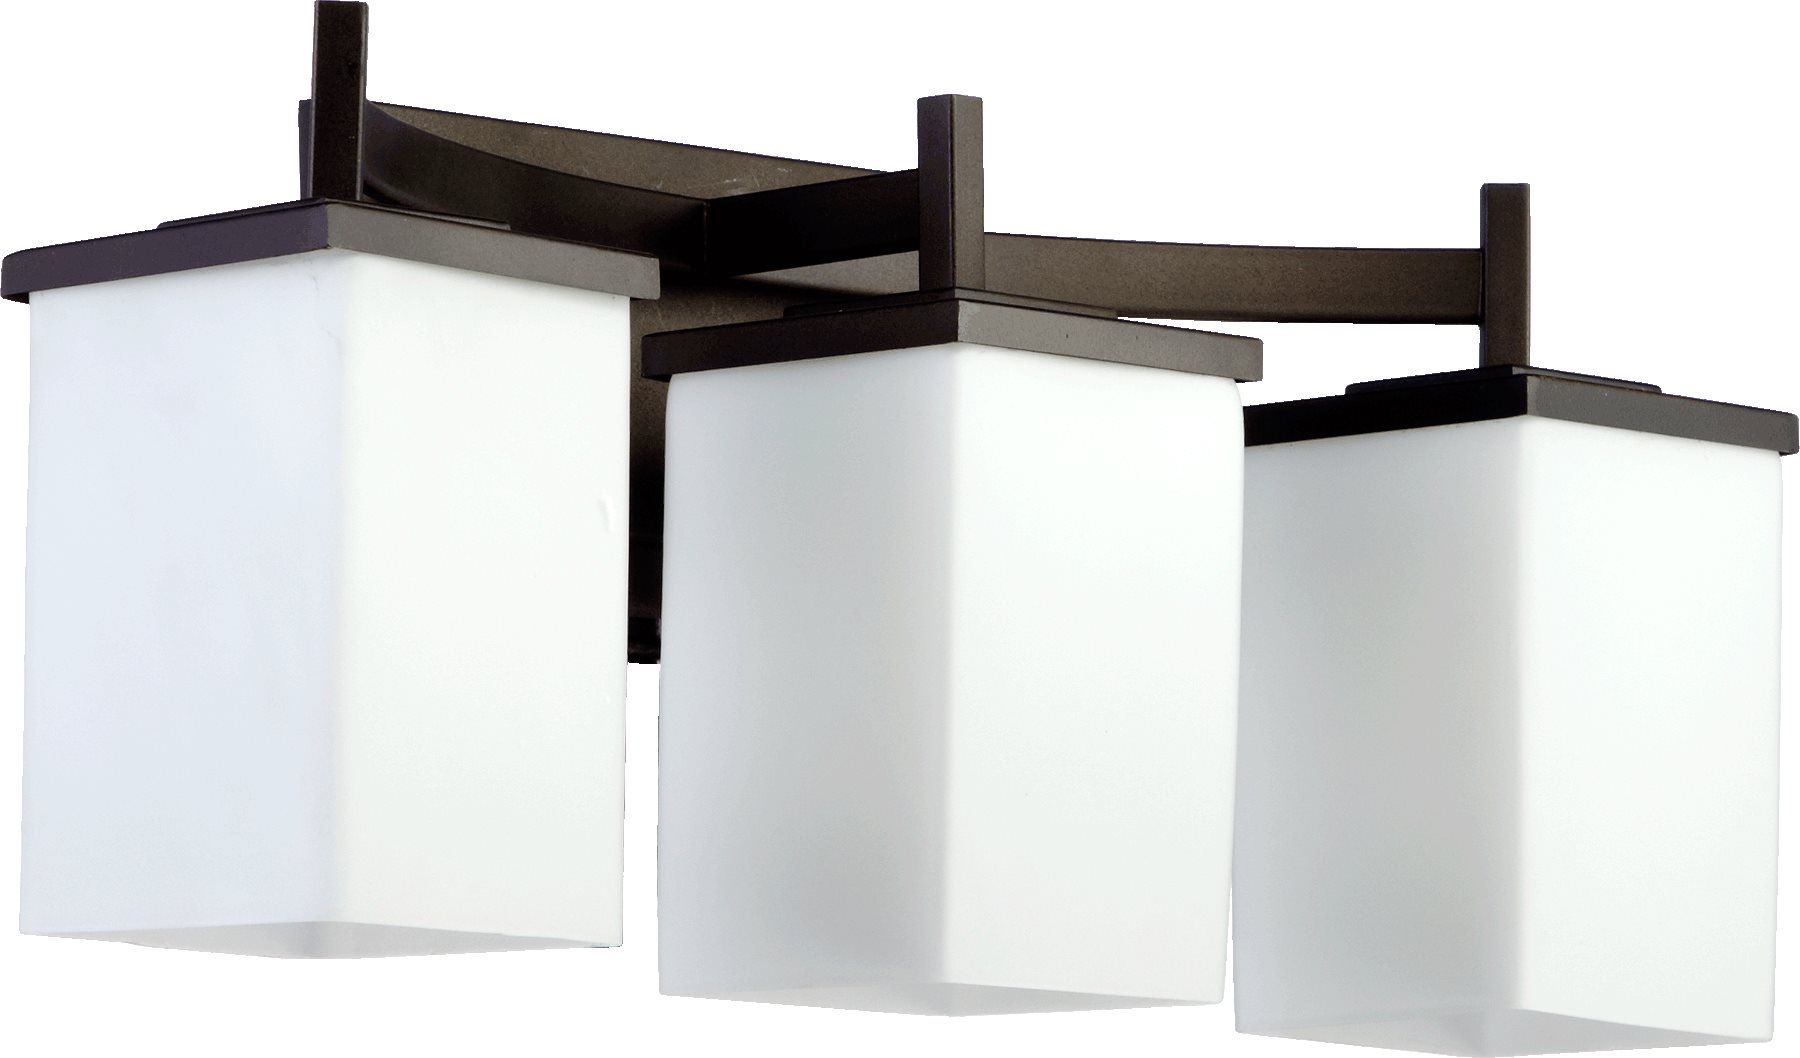 Quorum Lighting 5084 3 86 Delta Modern Contemporary Bathroom Vanity Light Qr 5084 3 86